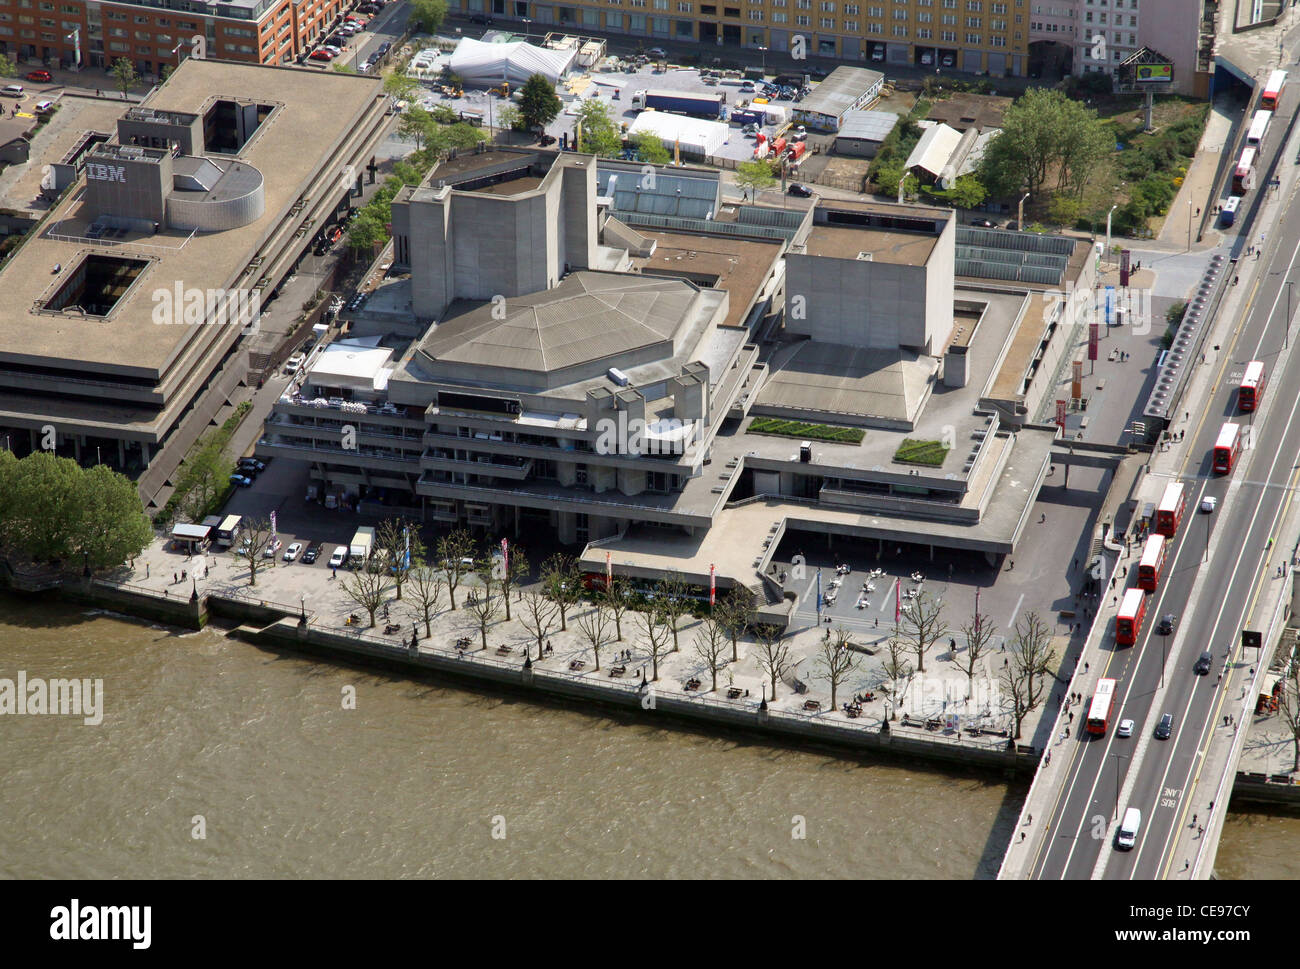 Aerial image of The National Theatre, south bank of the Thames, London SE1 - Stock Image